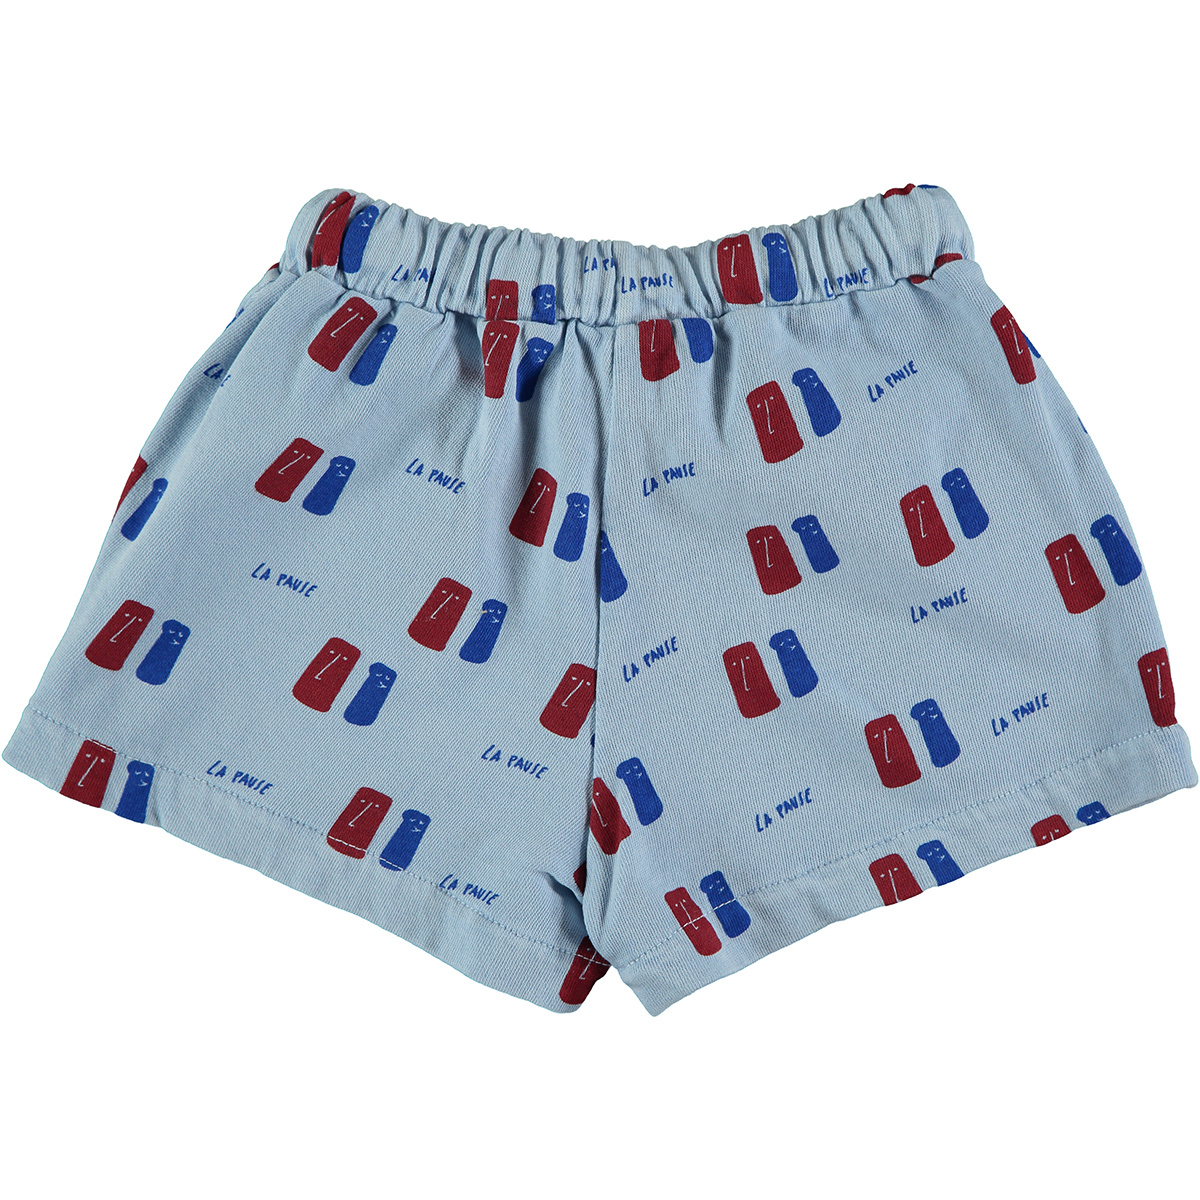 Short kid La Pause - Light Blue-2